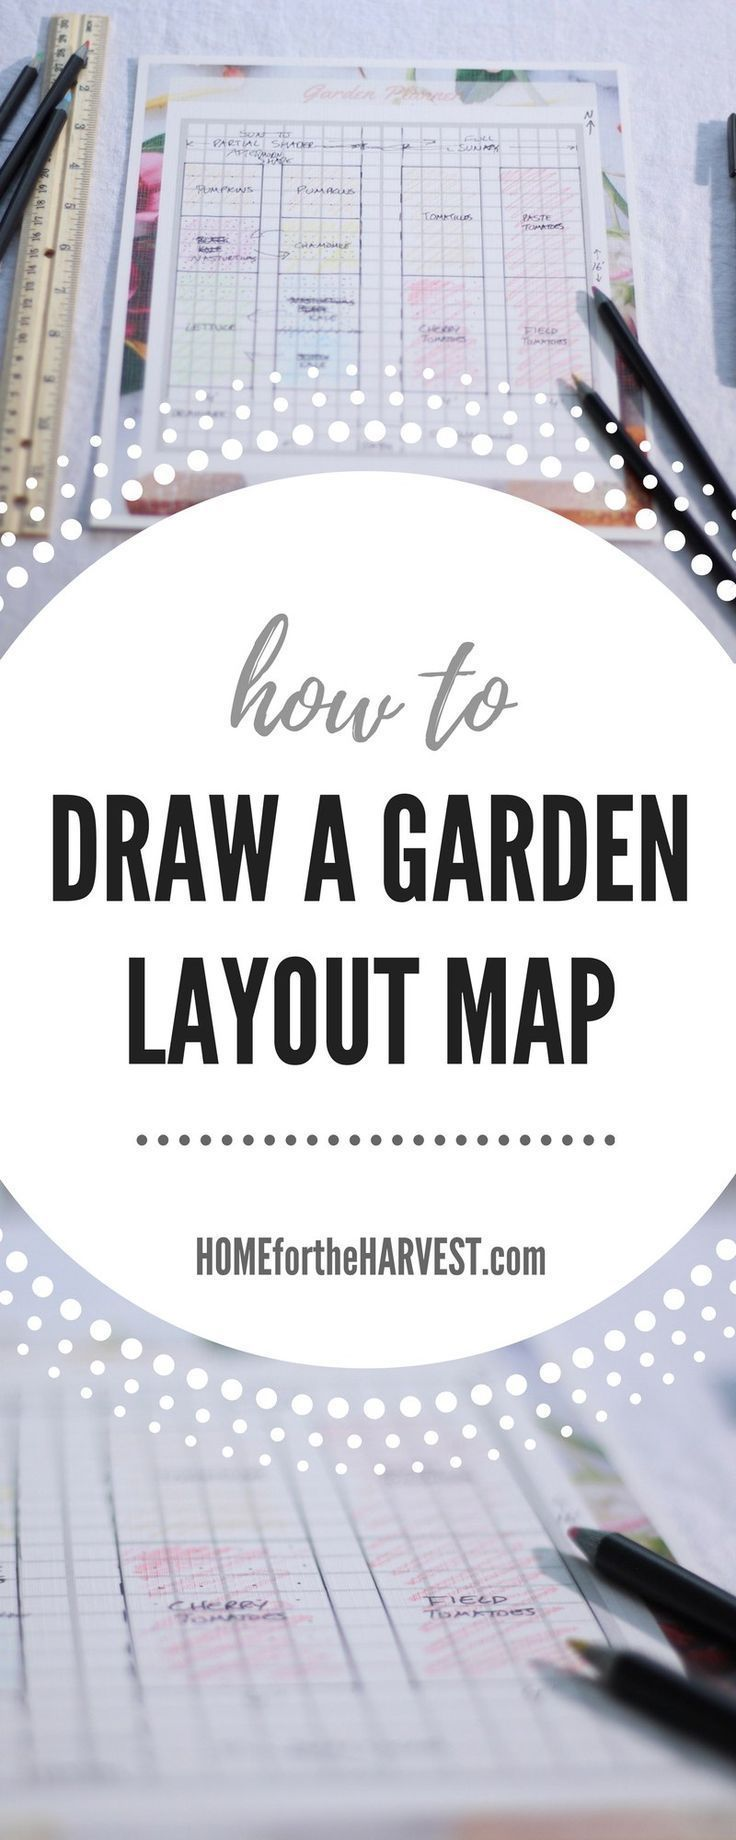 How to Draw a Garden Layout Map - A Key Part of the Garden Planning Process | Home for the Harvest #gardenplanning #gardenlayout #gardenmap #layoutmap #gardening #organicgardenning #gardenplanner #freeplanner